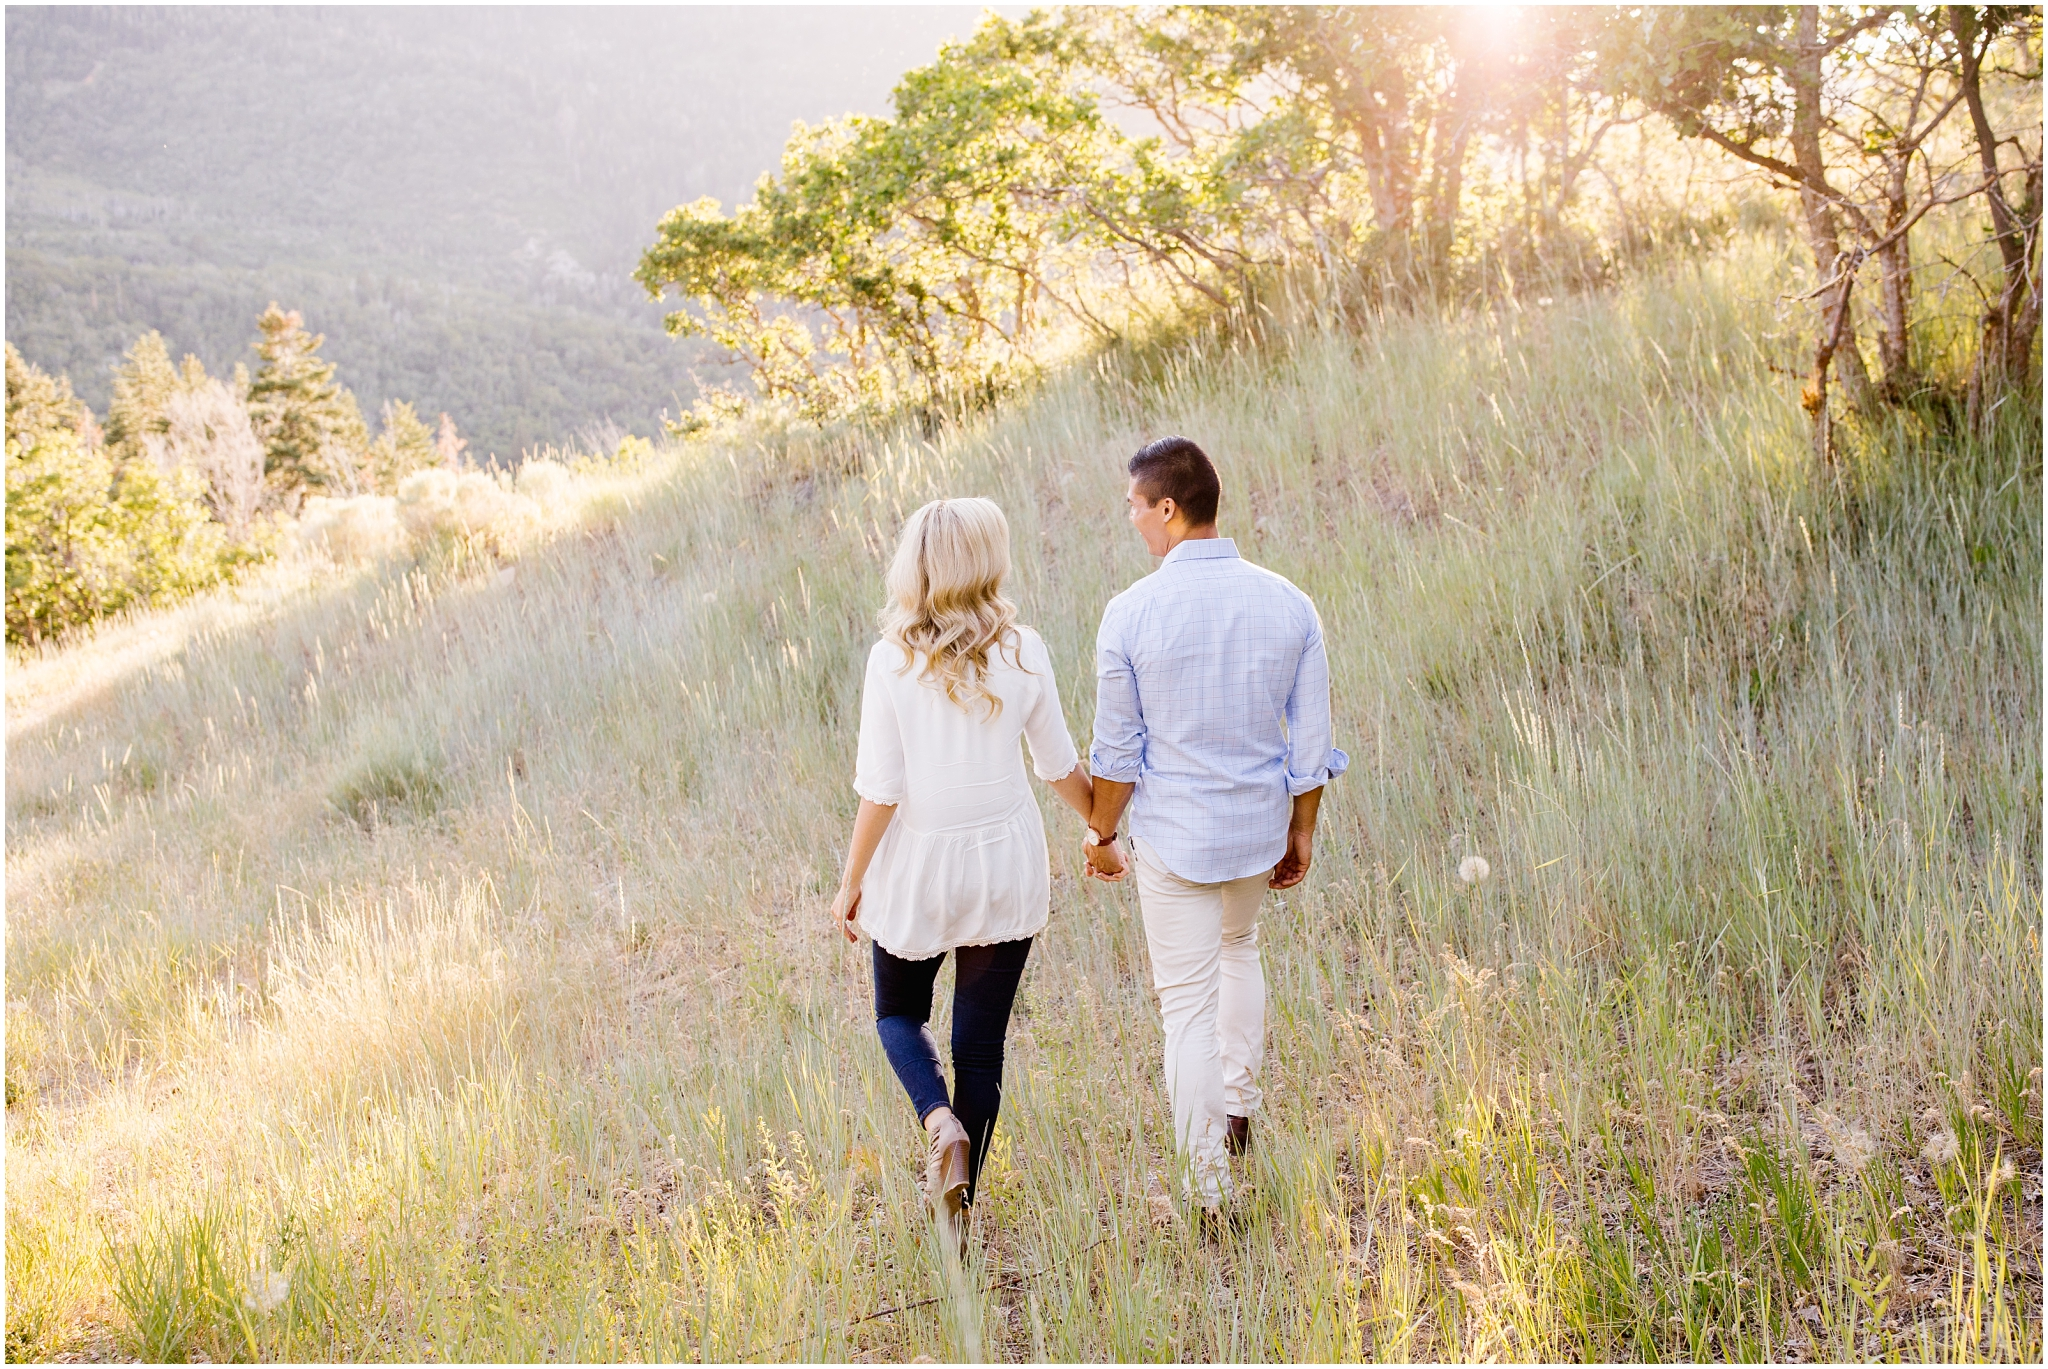 HCengagements-9_Lizzie-B-Imagery-Utah-Wedding-Photographer-Central-Utah-Park-City-Salt-Lake-City-Payson-Canyon-Engagement-Session.jpg